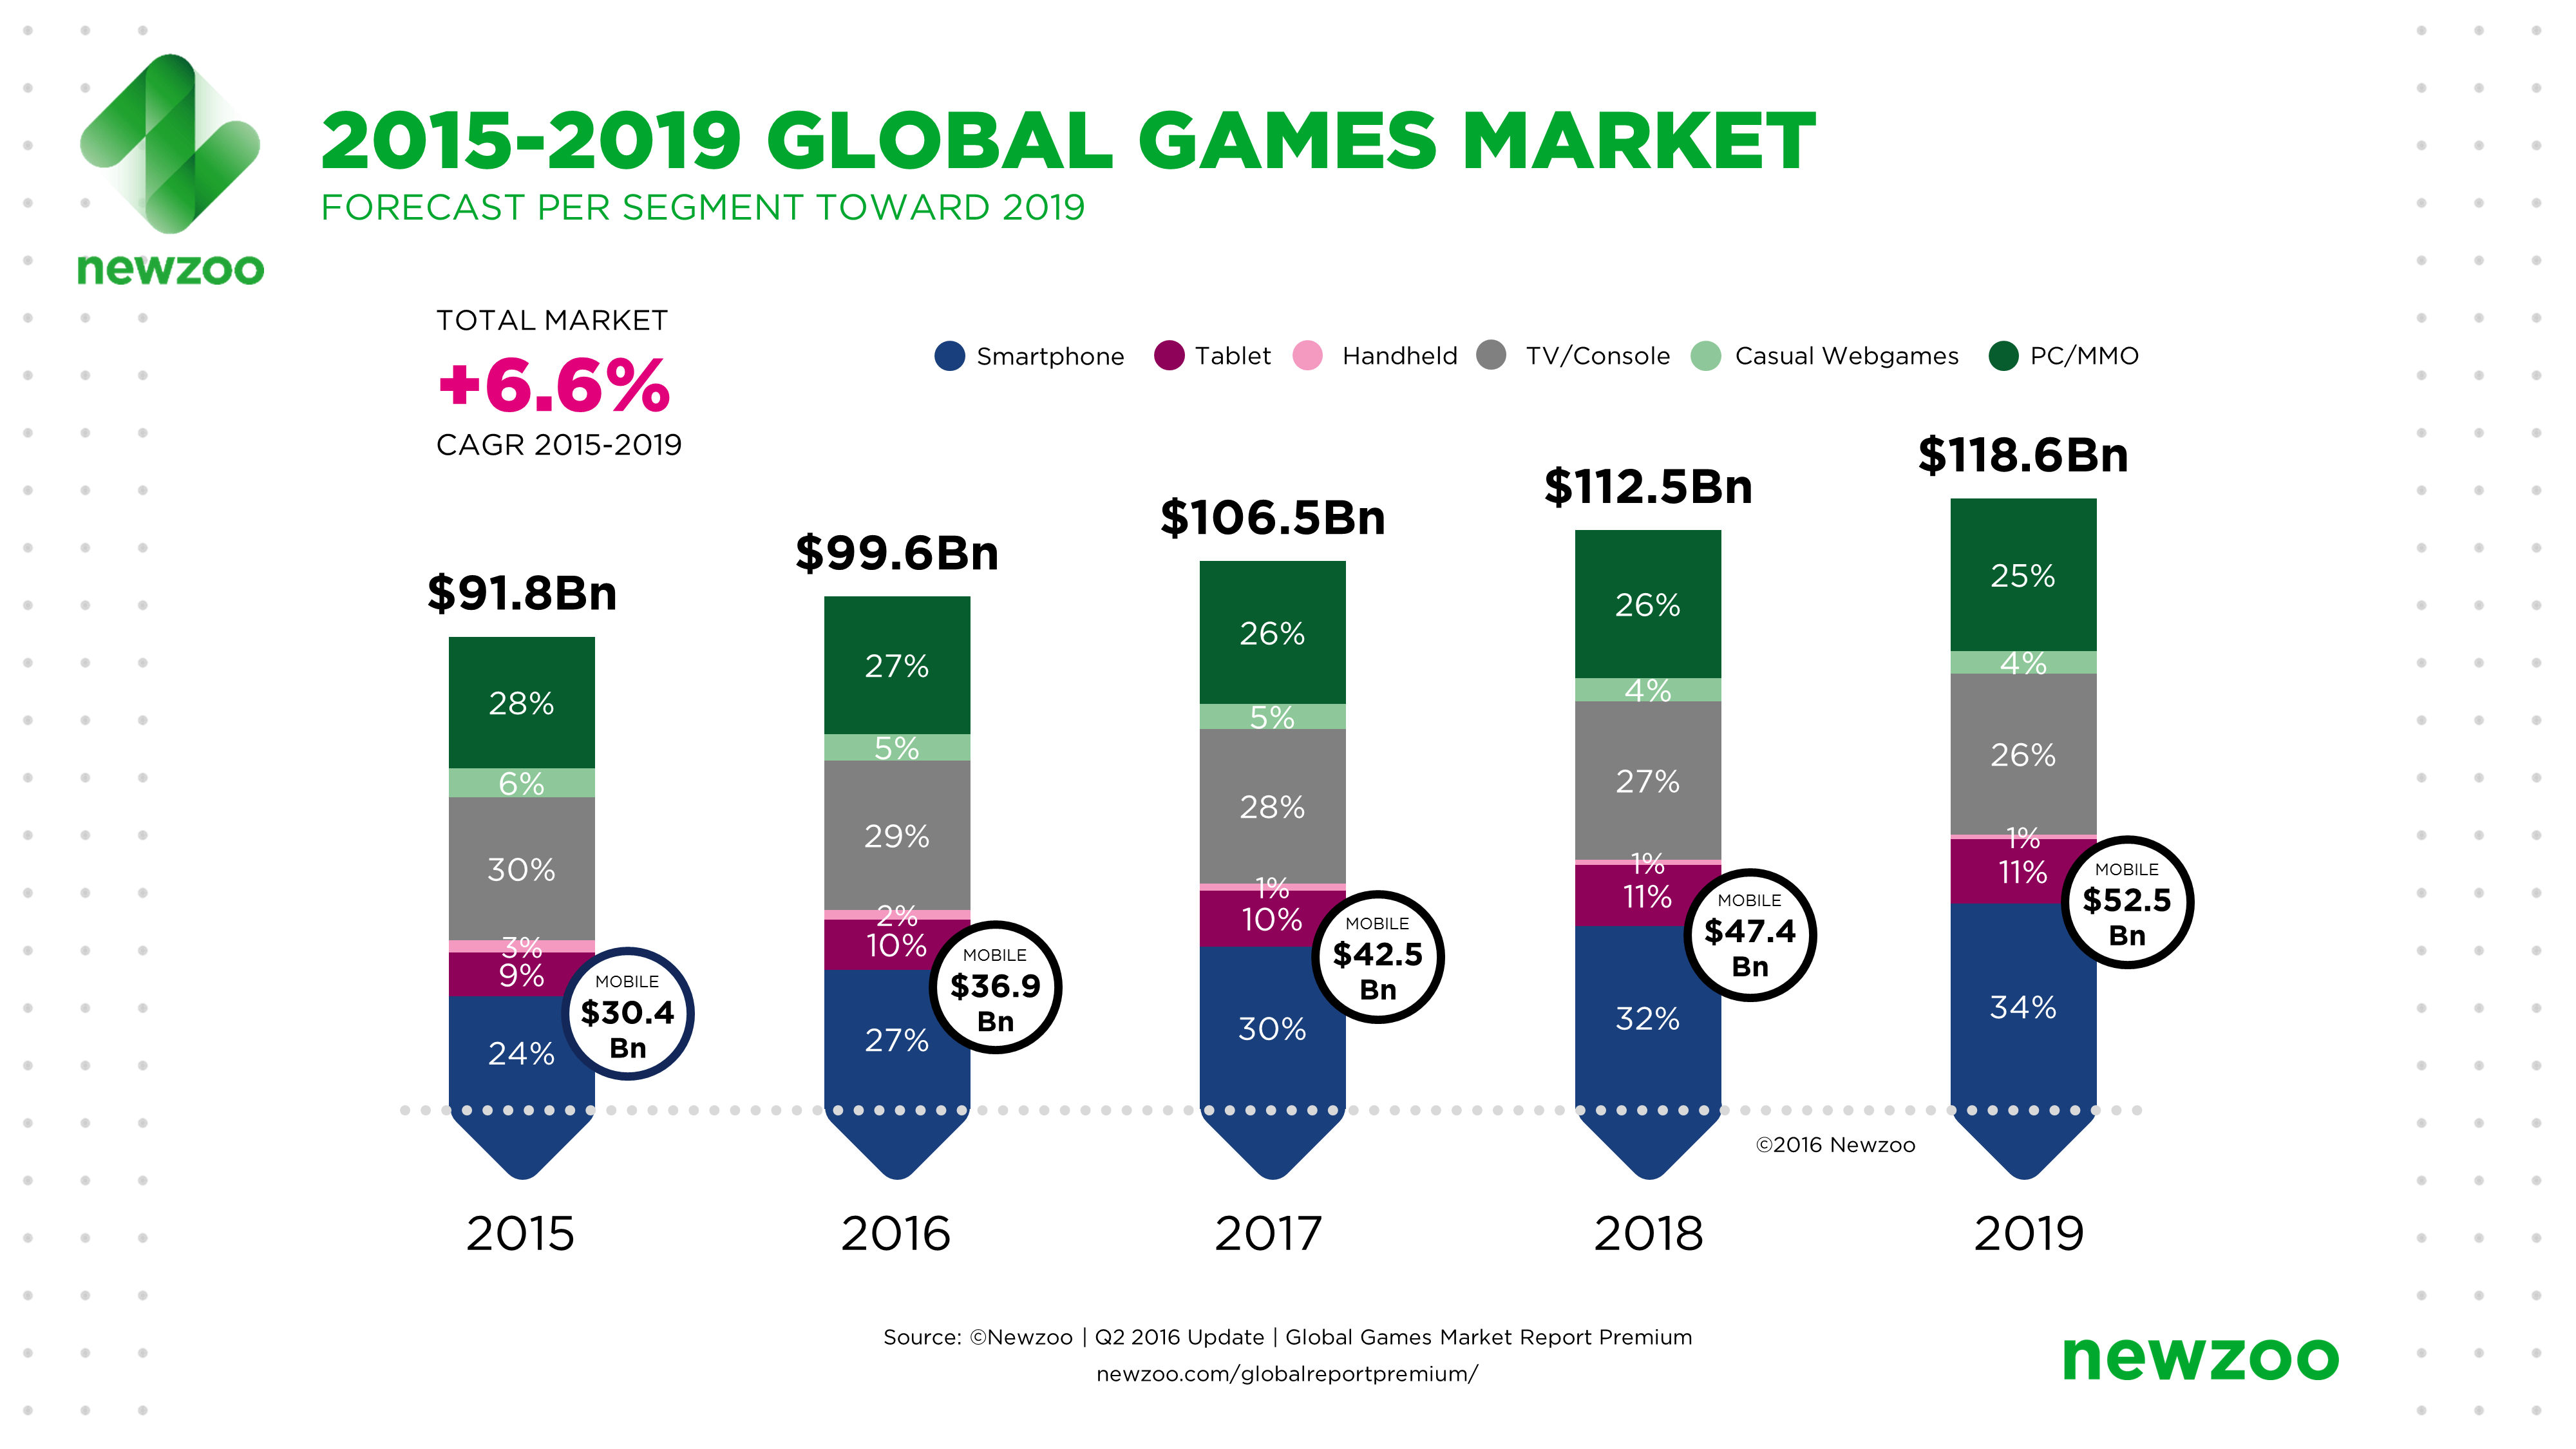 https://cdn-www.bluestacks.com/bs-images/Newzoo_Global_Games_Market_Revenue_Growth_2015-2019.png